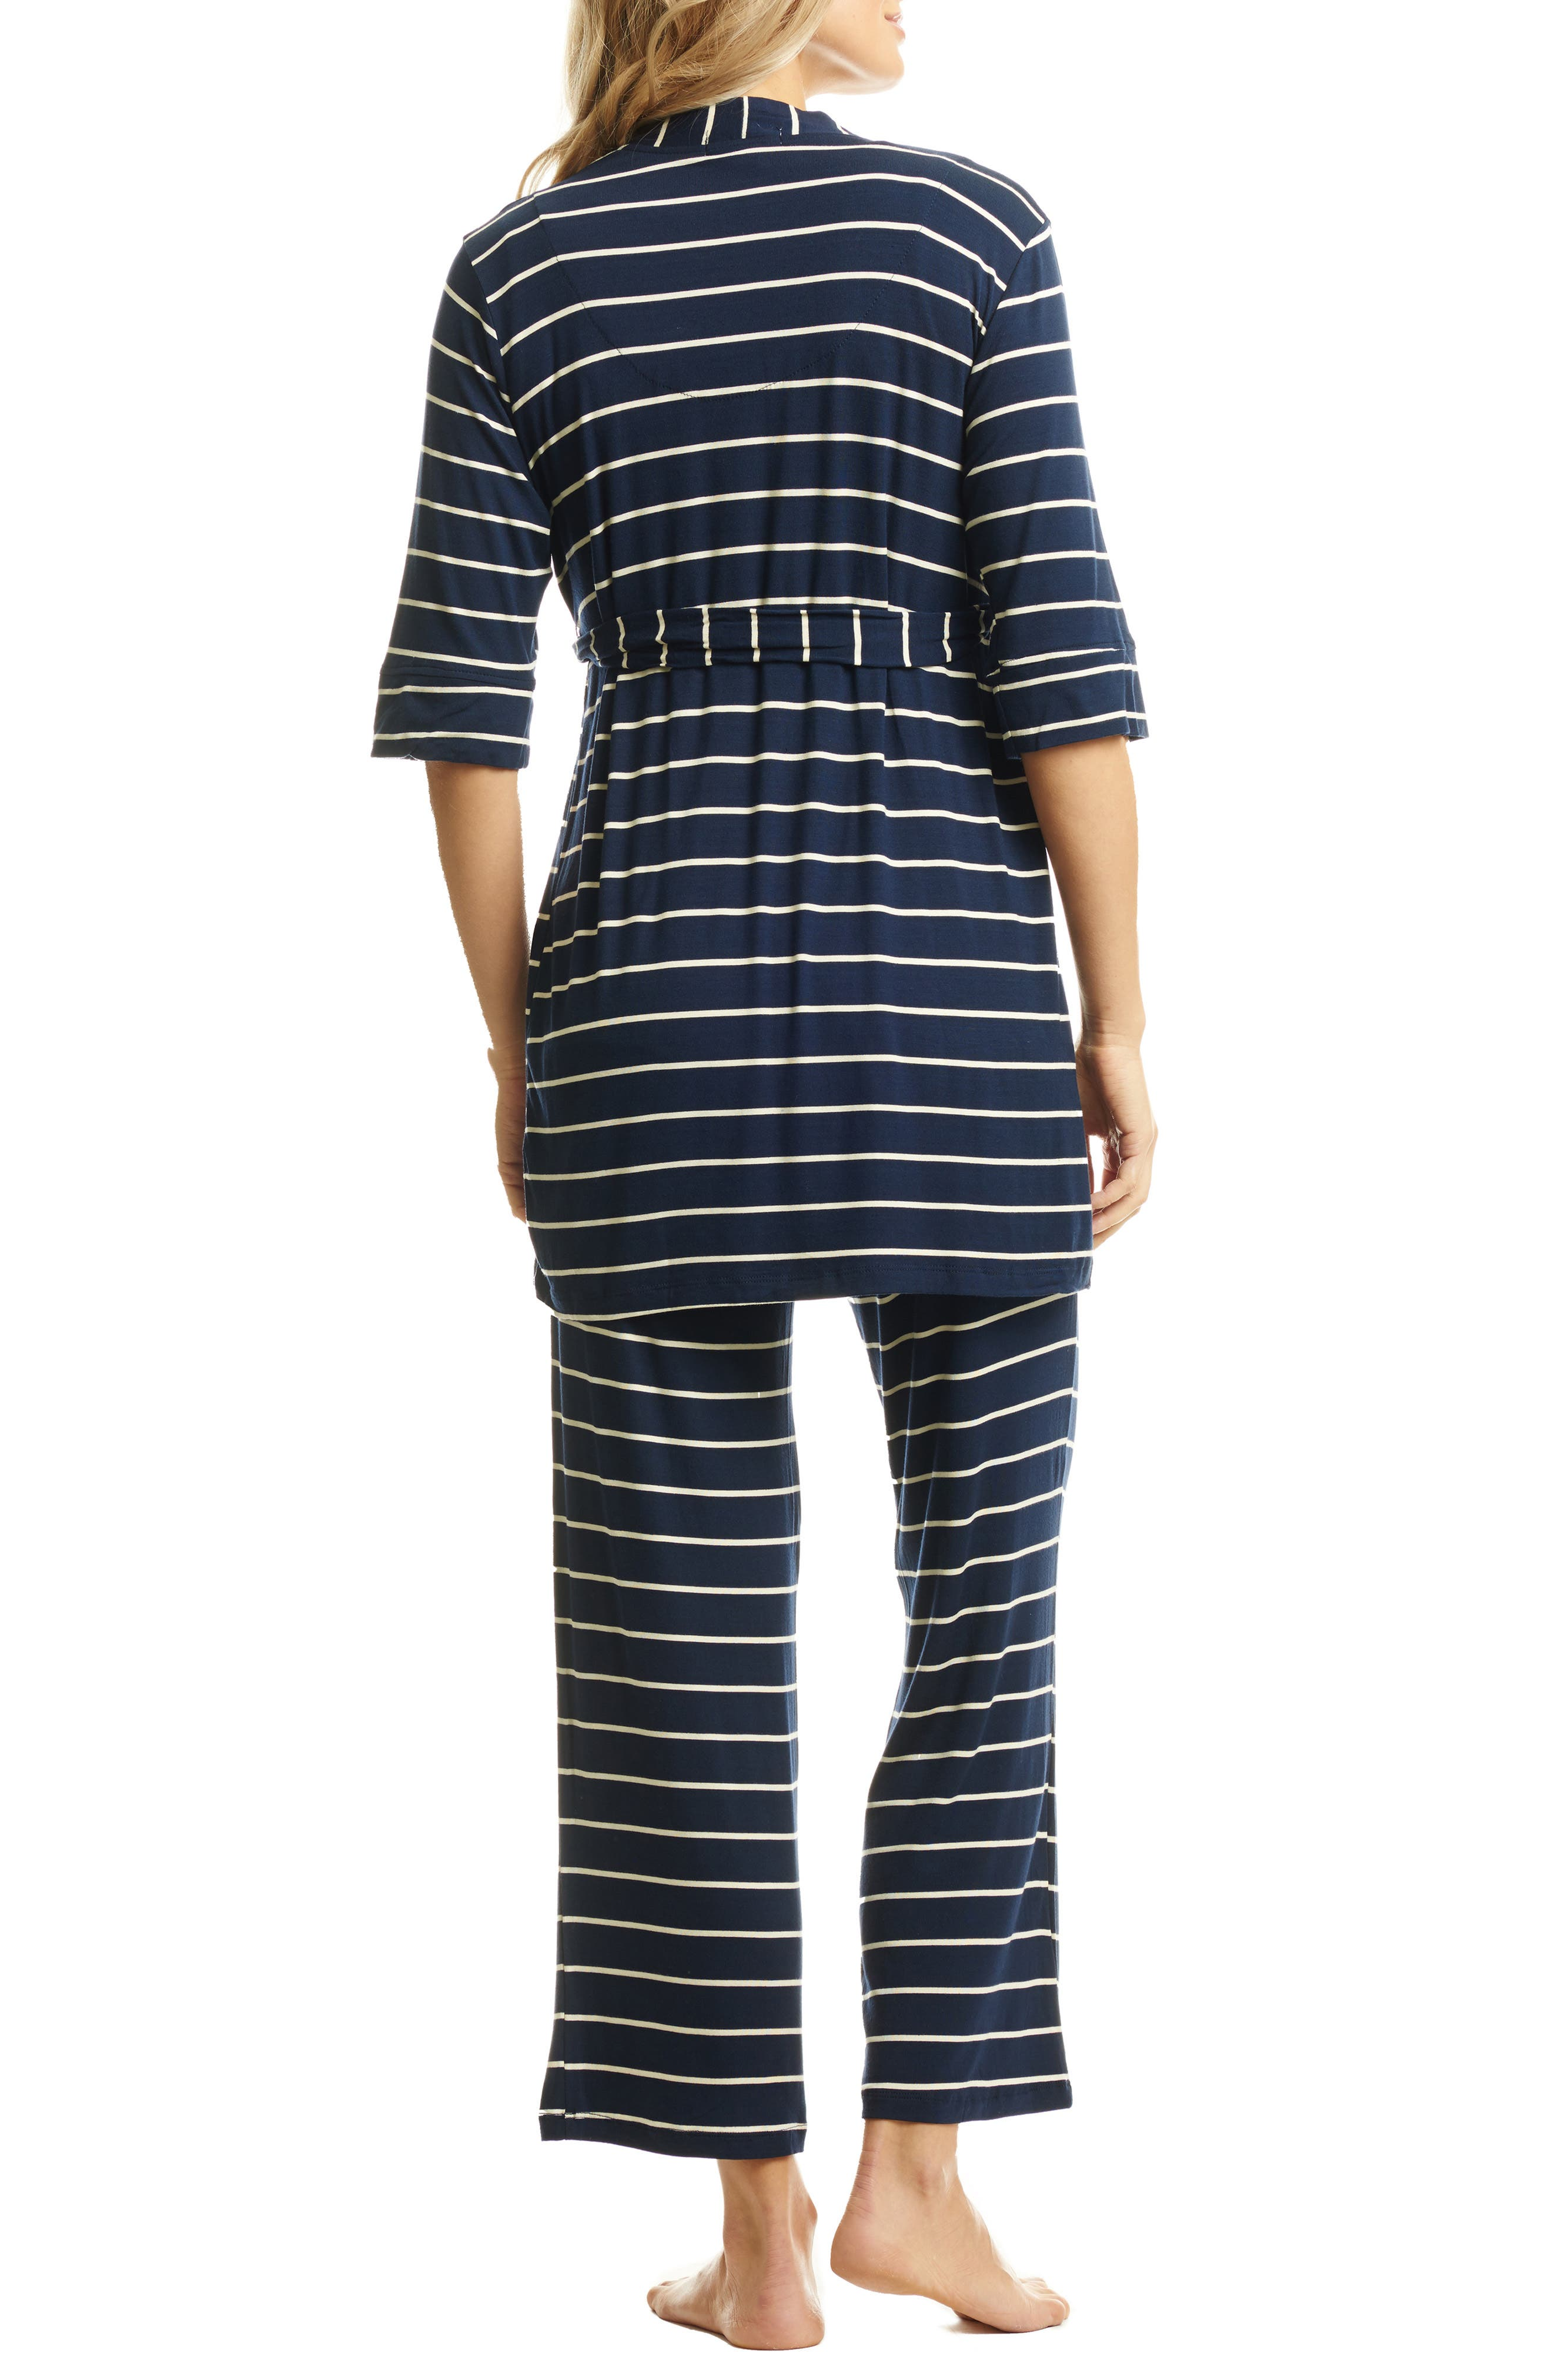 EVERLY GREY, Roxanne - During & After 5-Piece Maternity Sleepwear Set, Alternate thumbnail 2, color, NAVY